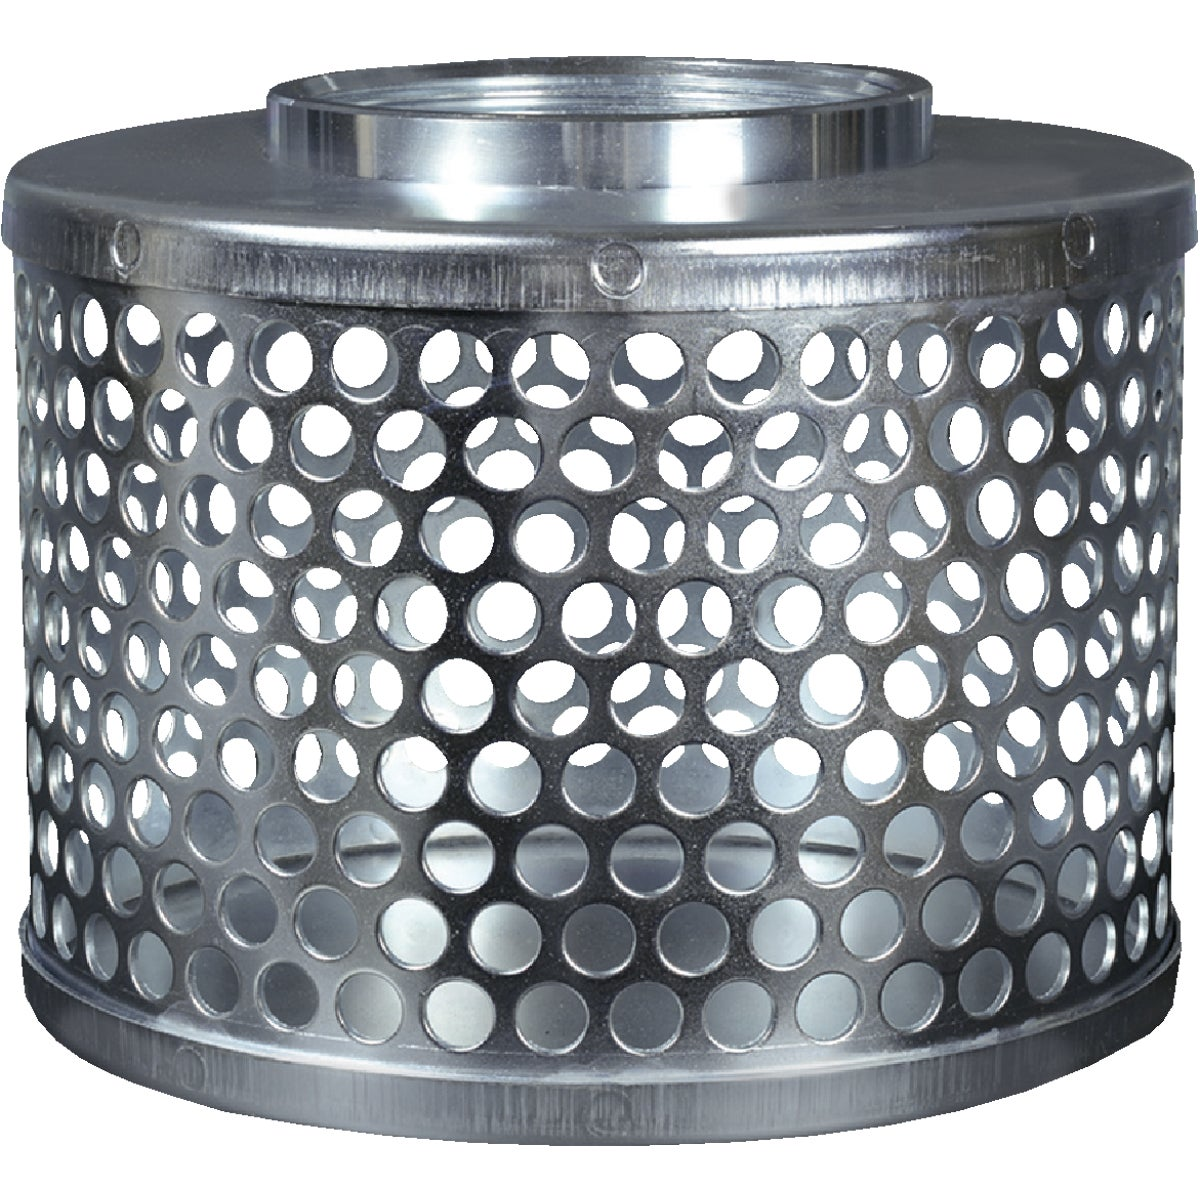 "1-1/2"" PL STEEL STRAINER"